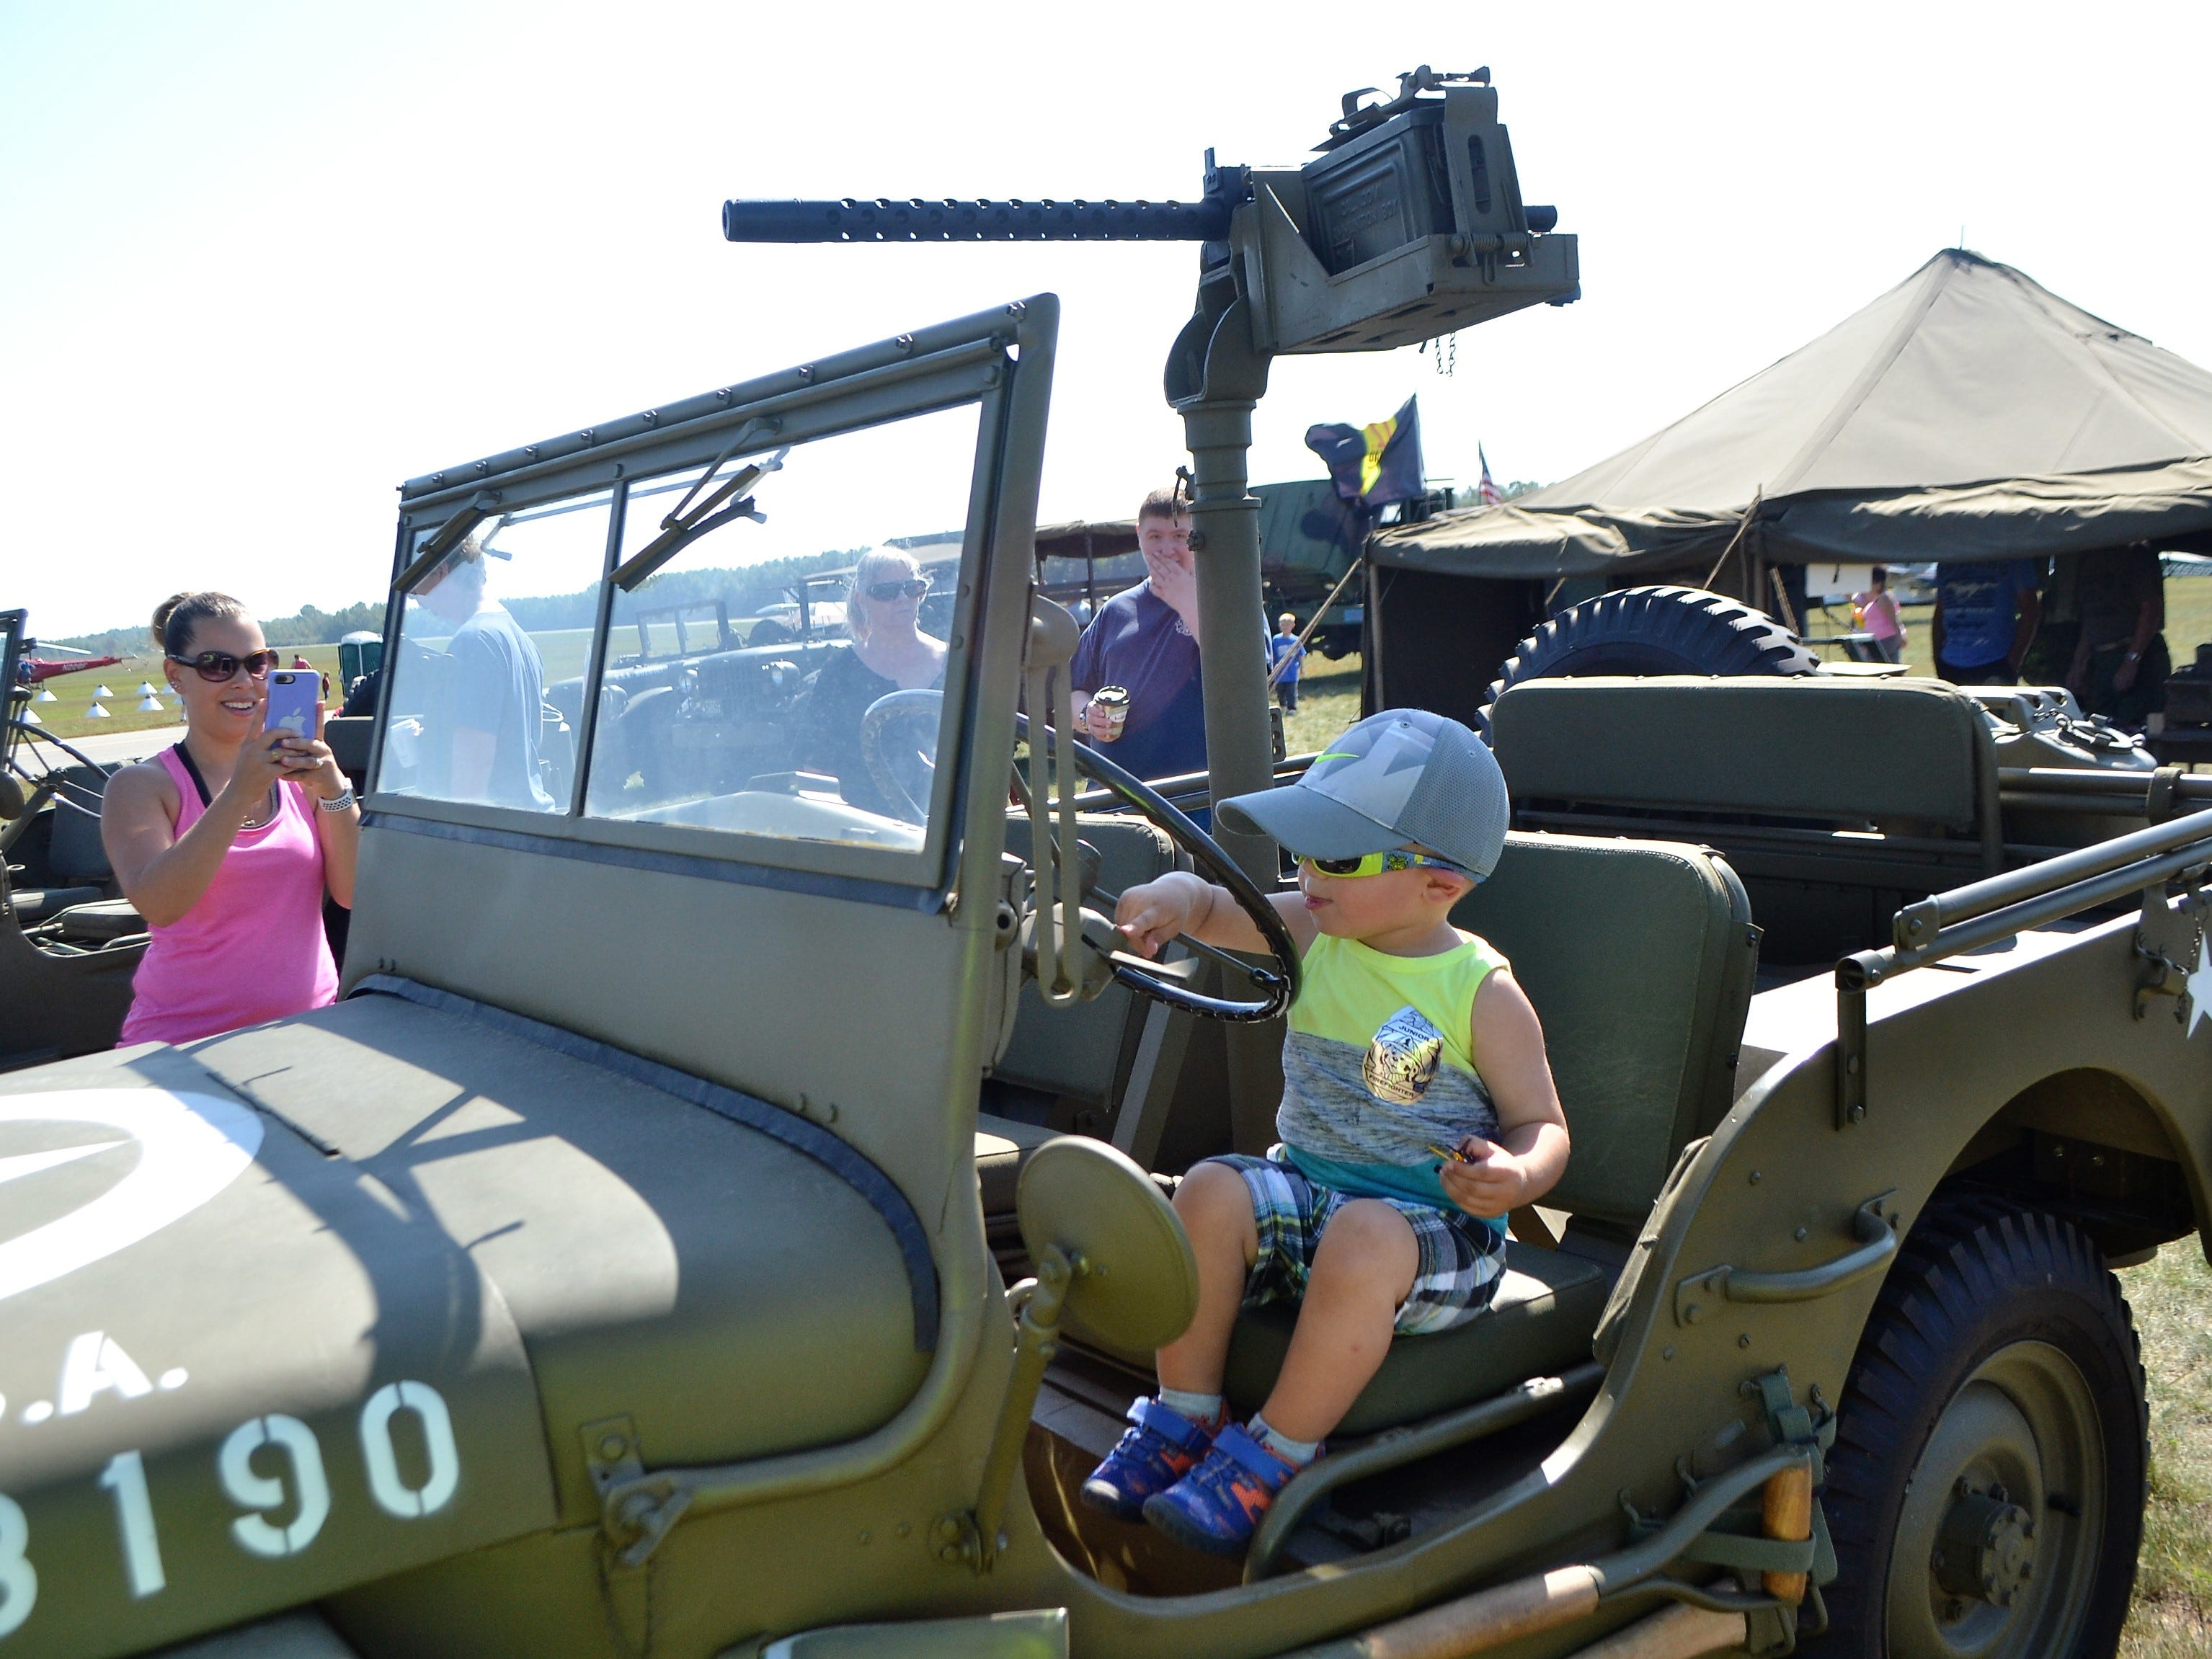 Emmett Steppe, 2, of Oconto Falls, sits behind the wheel of a WWII Army Jeep at the Oconto Fly-in, Car & Tractor Show on Sept. 15 at the Oconto-J. Douglas Bake Municipal Airport.